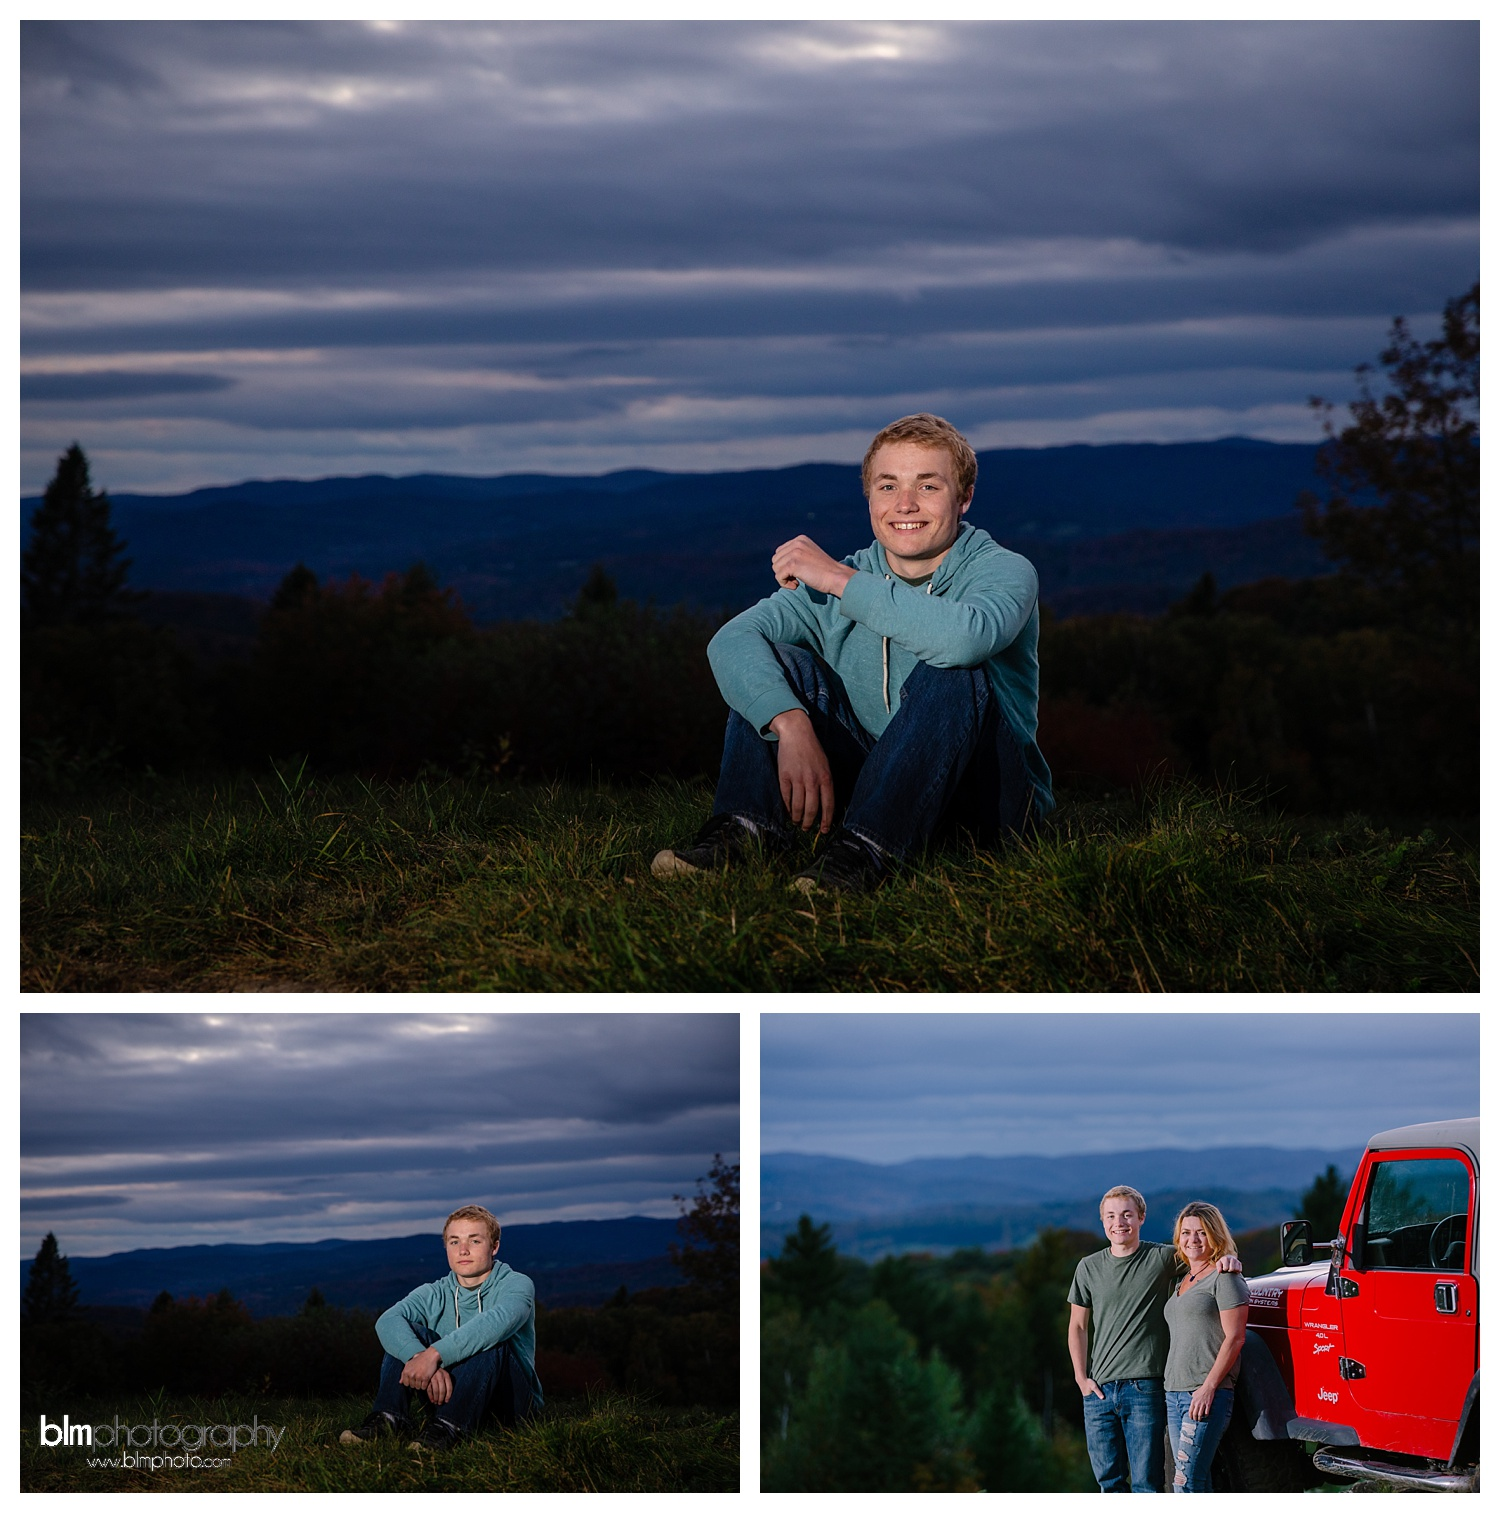 BLM,Brianna Morrissey,Brie Morrissey,Corinth,High School Senior,Photo,Photographer,Photography,Senior Photo,Senior Portraits,Sep,September,Tristan Oakley,Tristan-Oakley,Tucker Mountain,VT,Vermont,www.blmphoto.com/contact,©BLM Photography 2018,